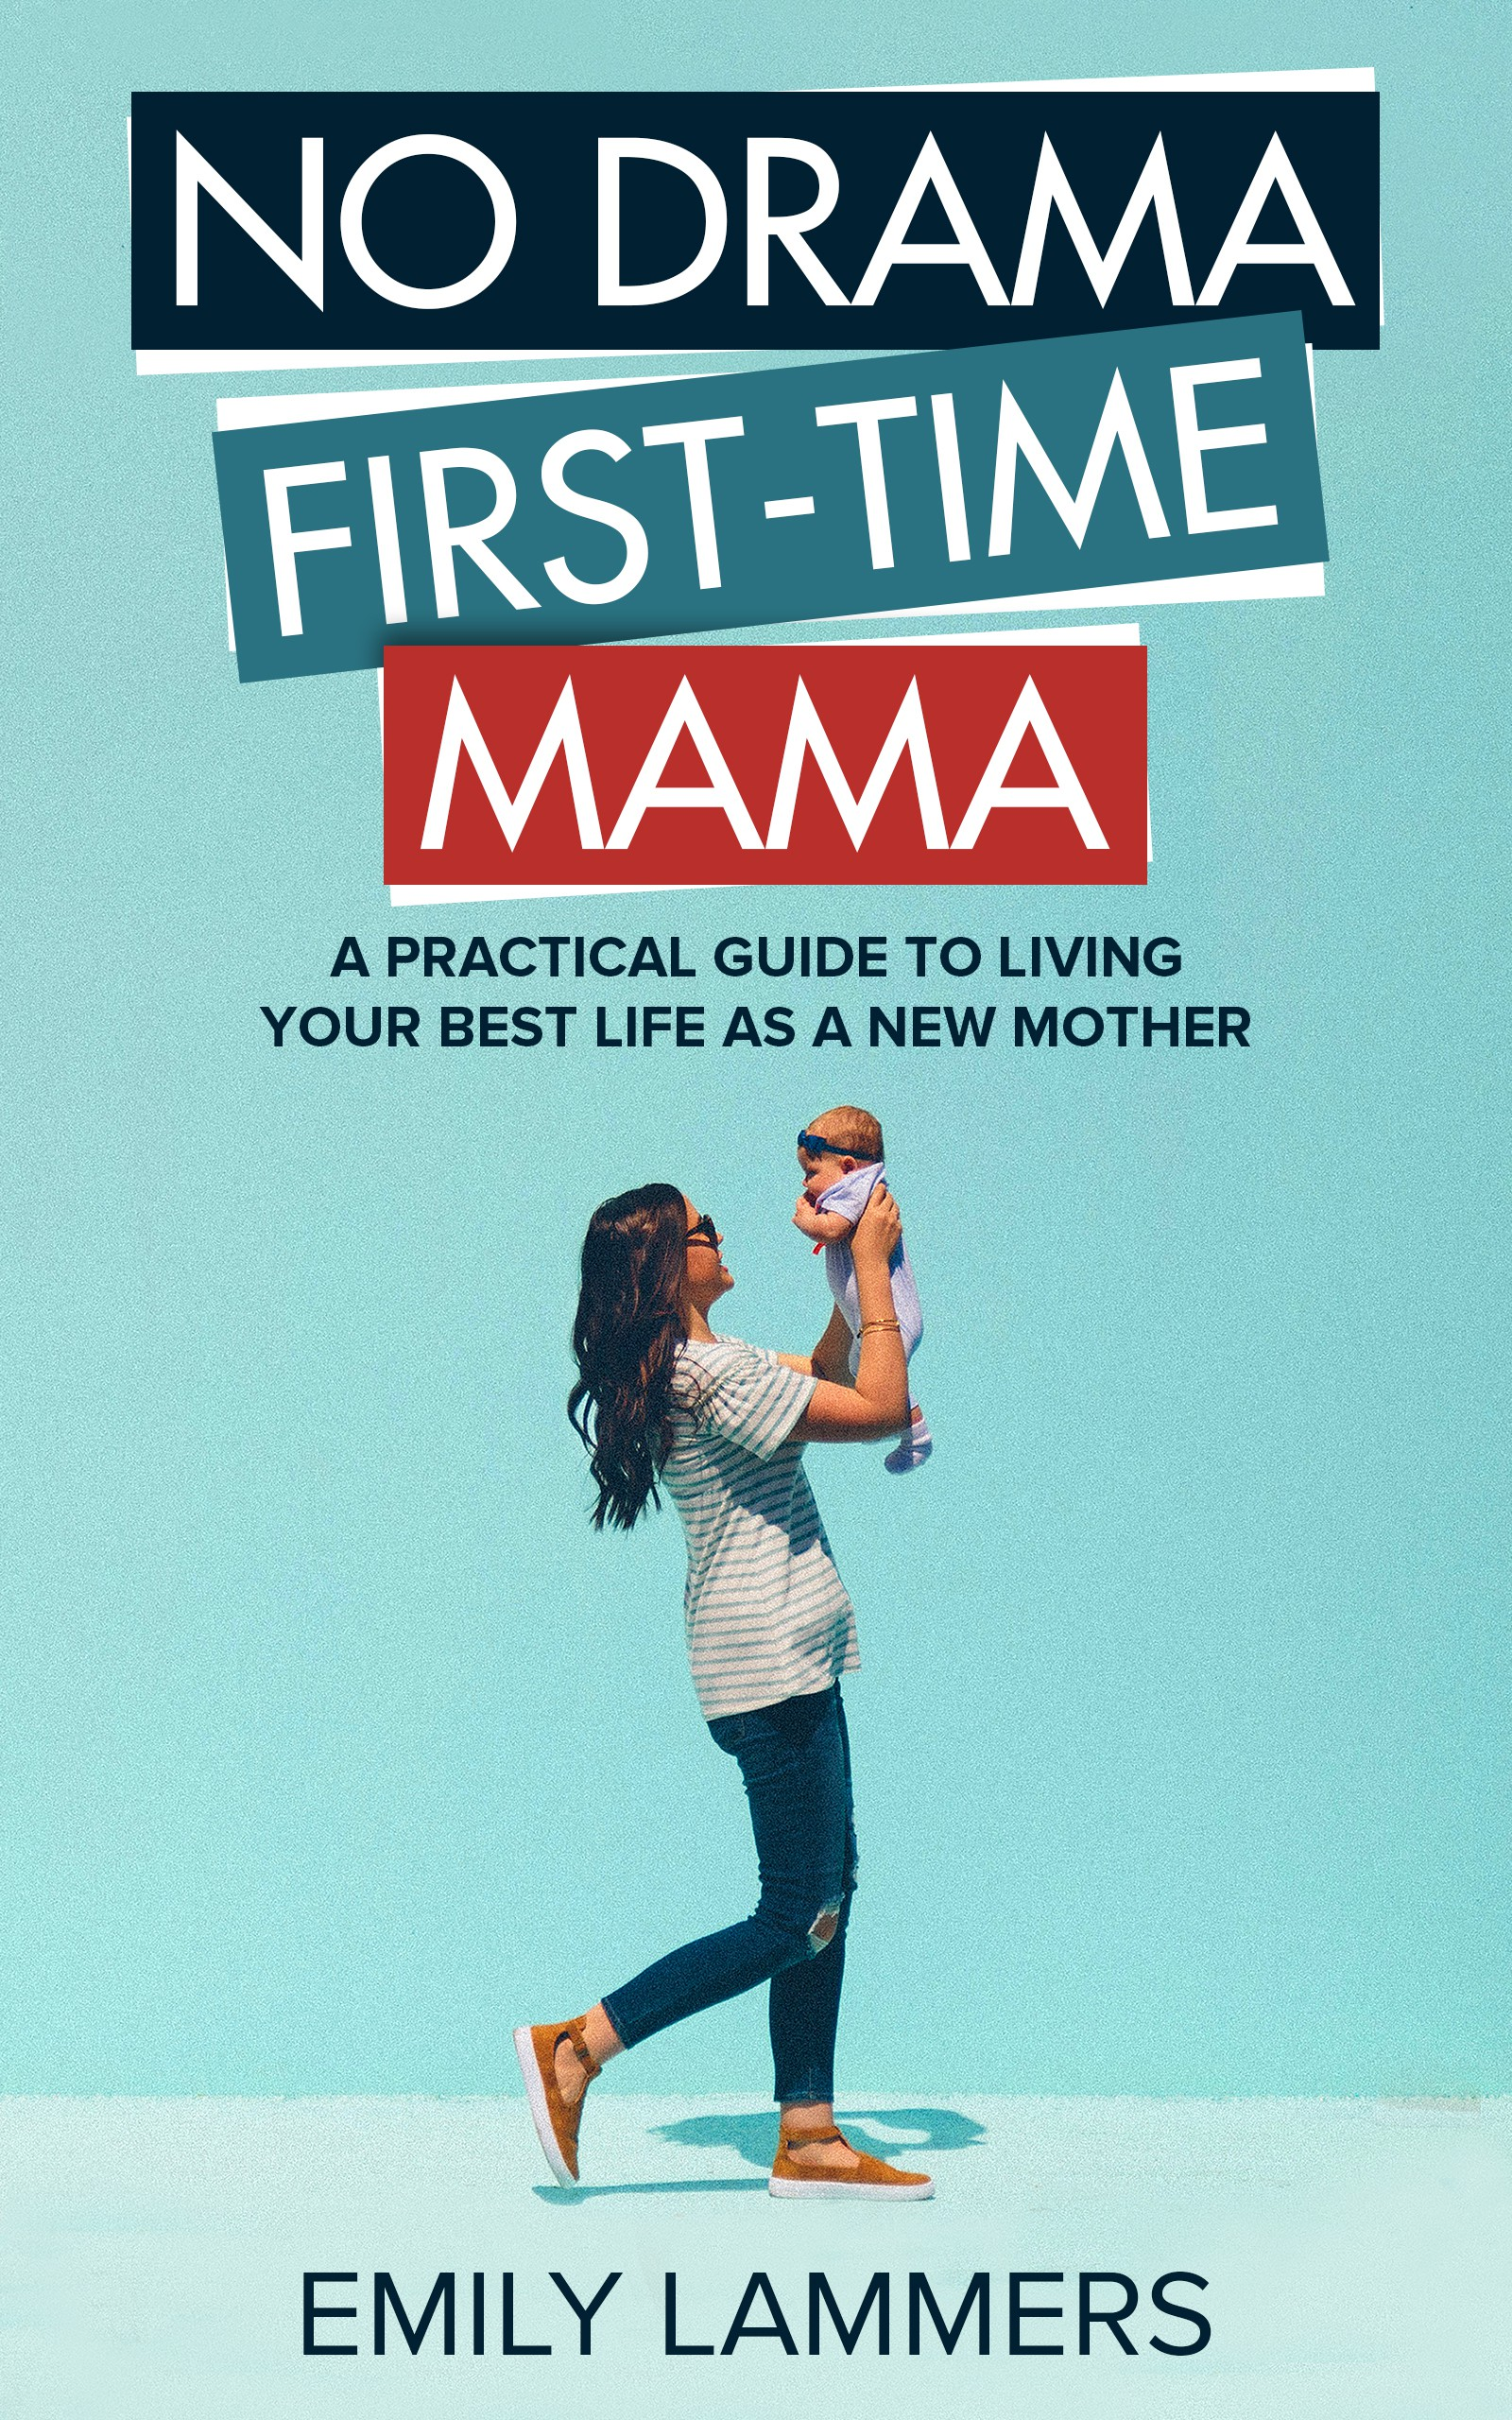 eBook cover to inspire and empower new mothers